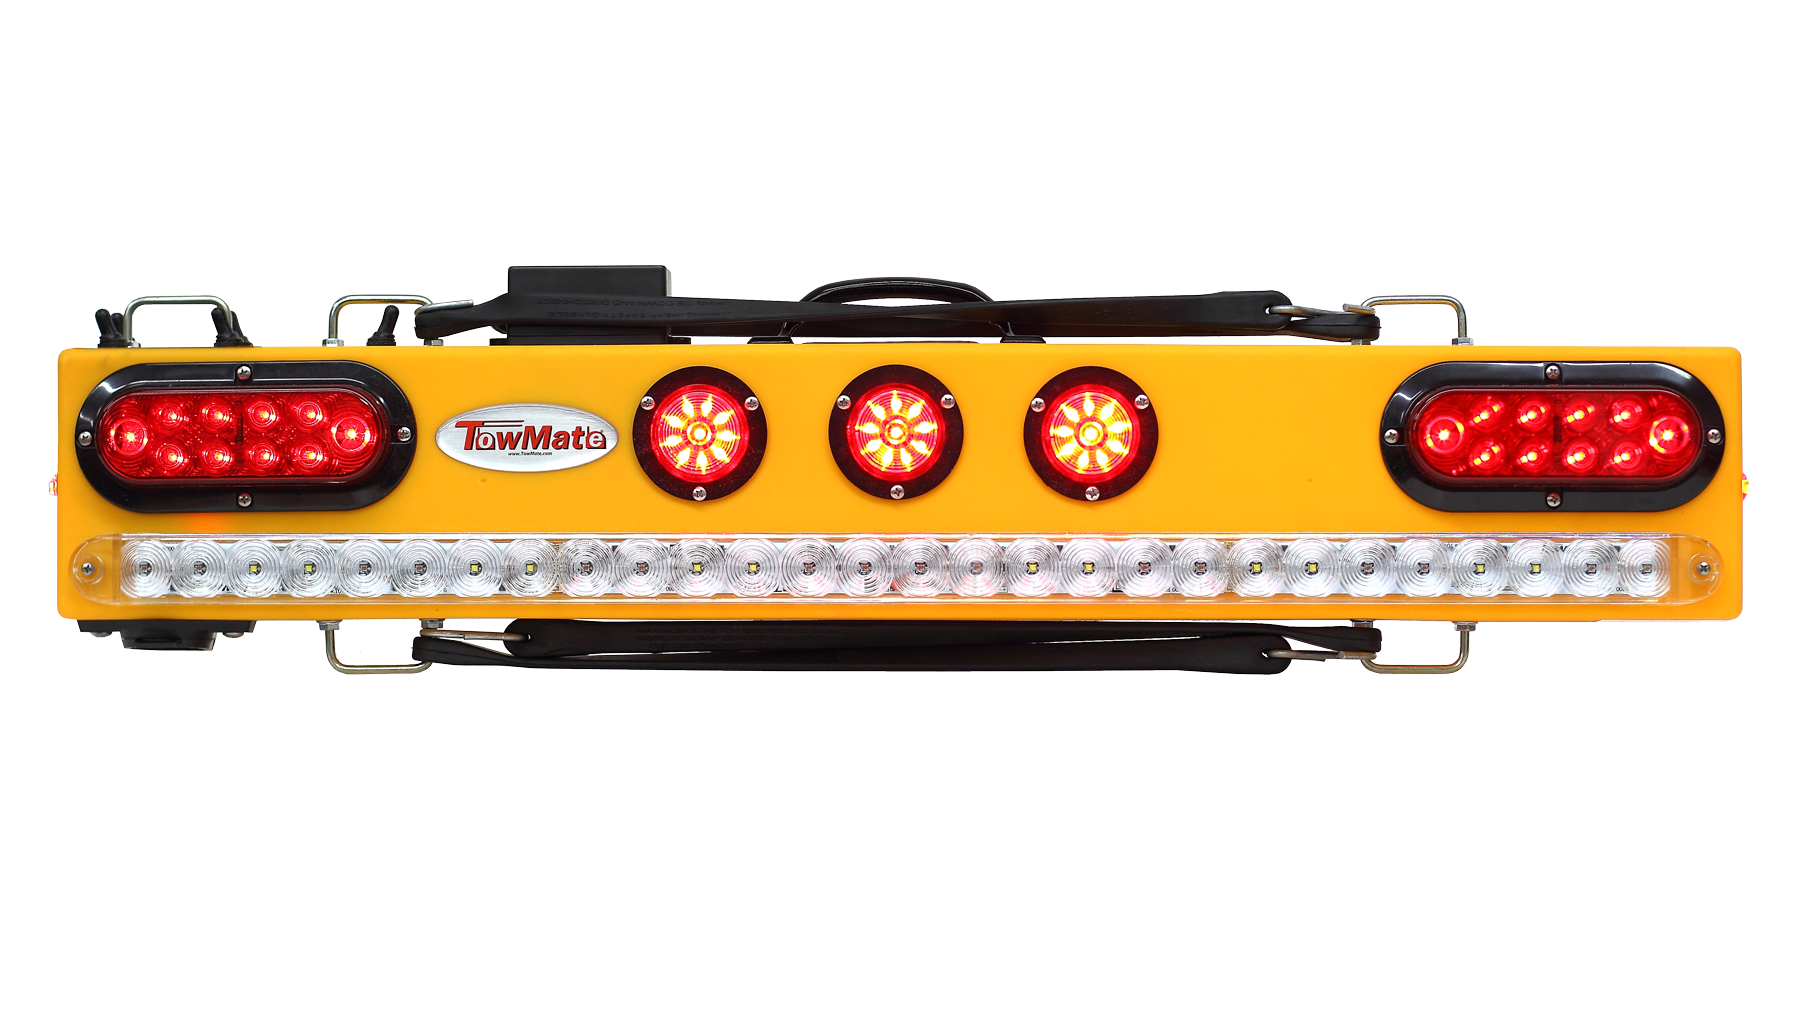 Mo37 Lithium Powered Wireless Tow Light Strobe And Worklight